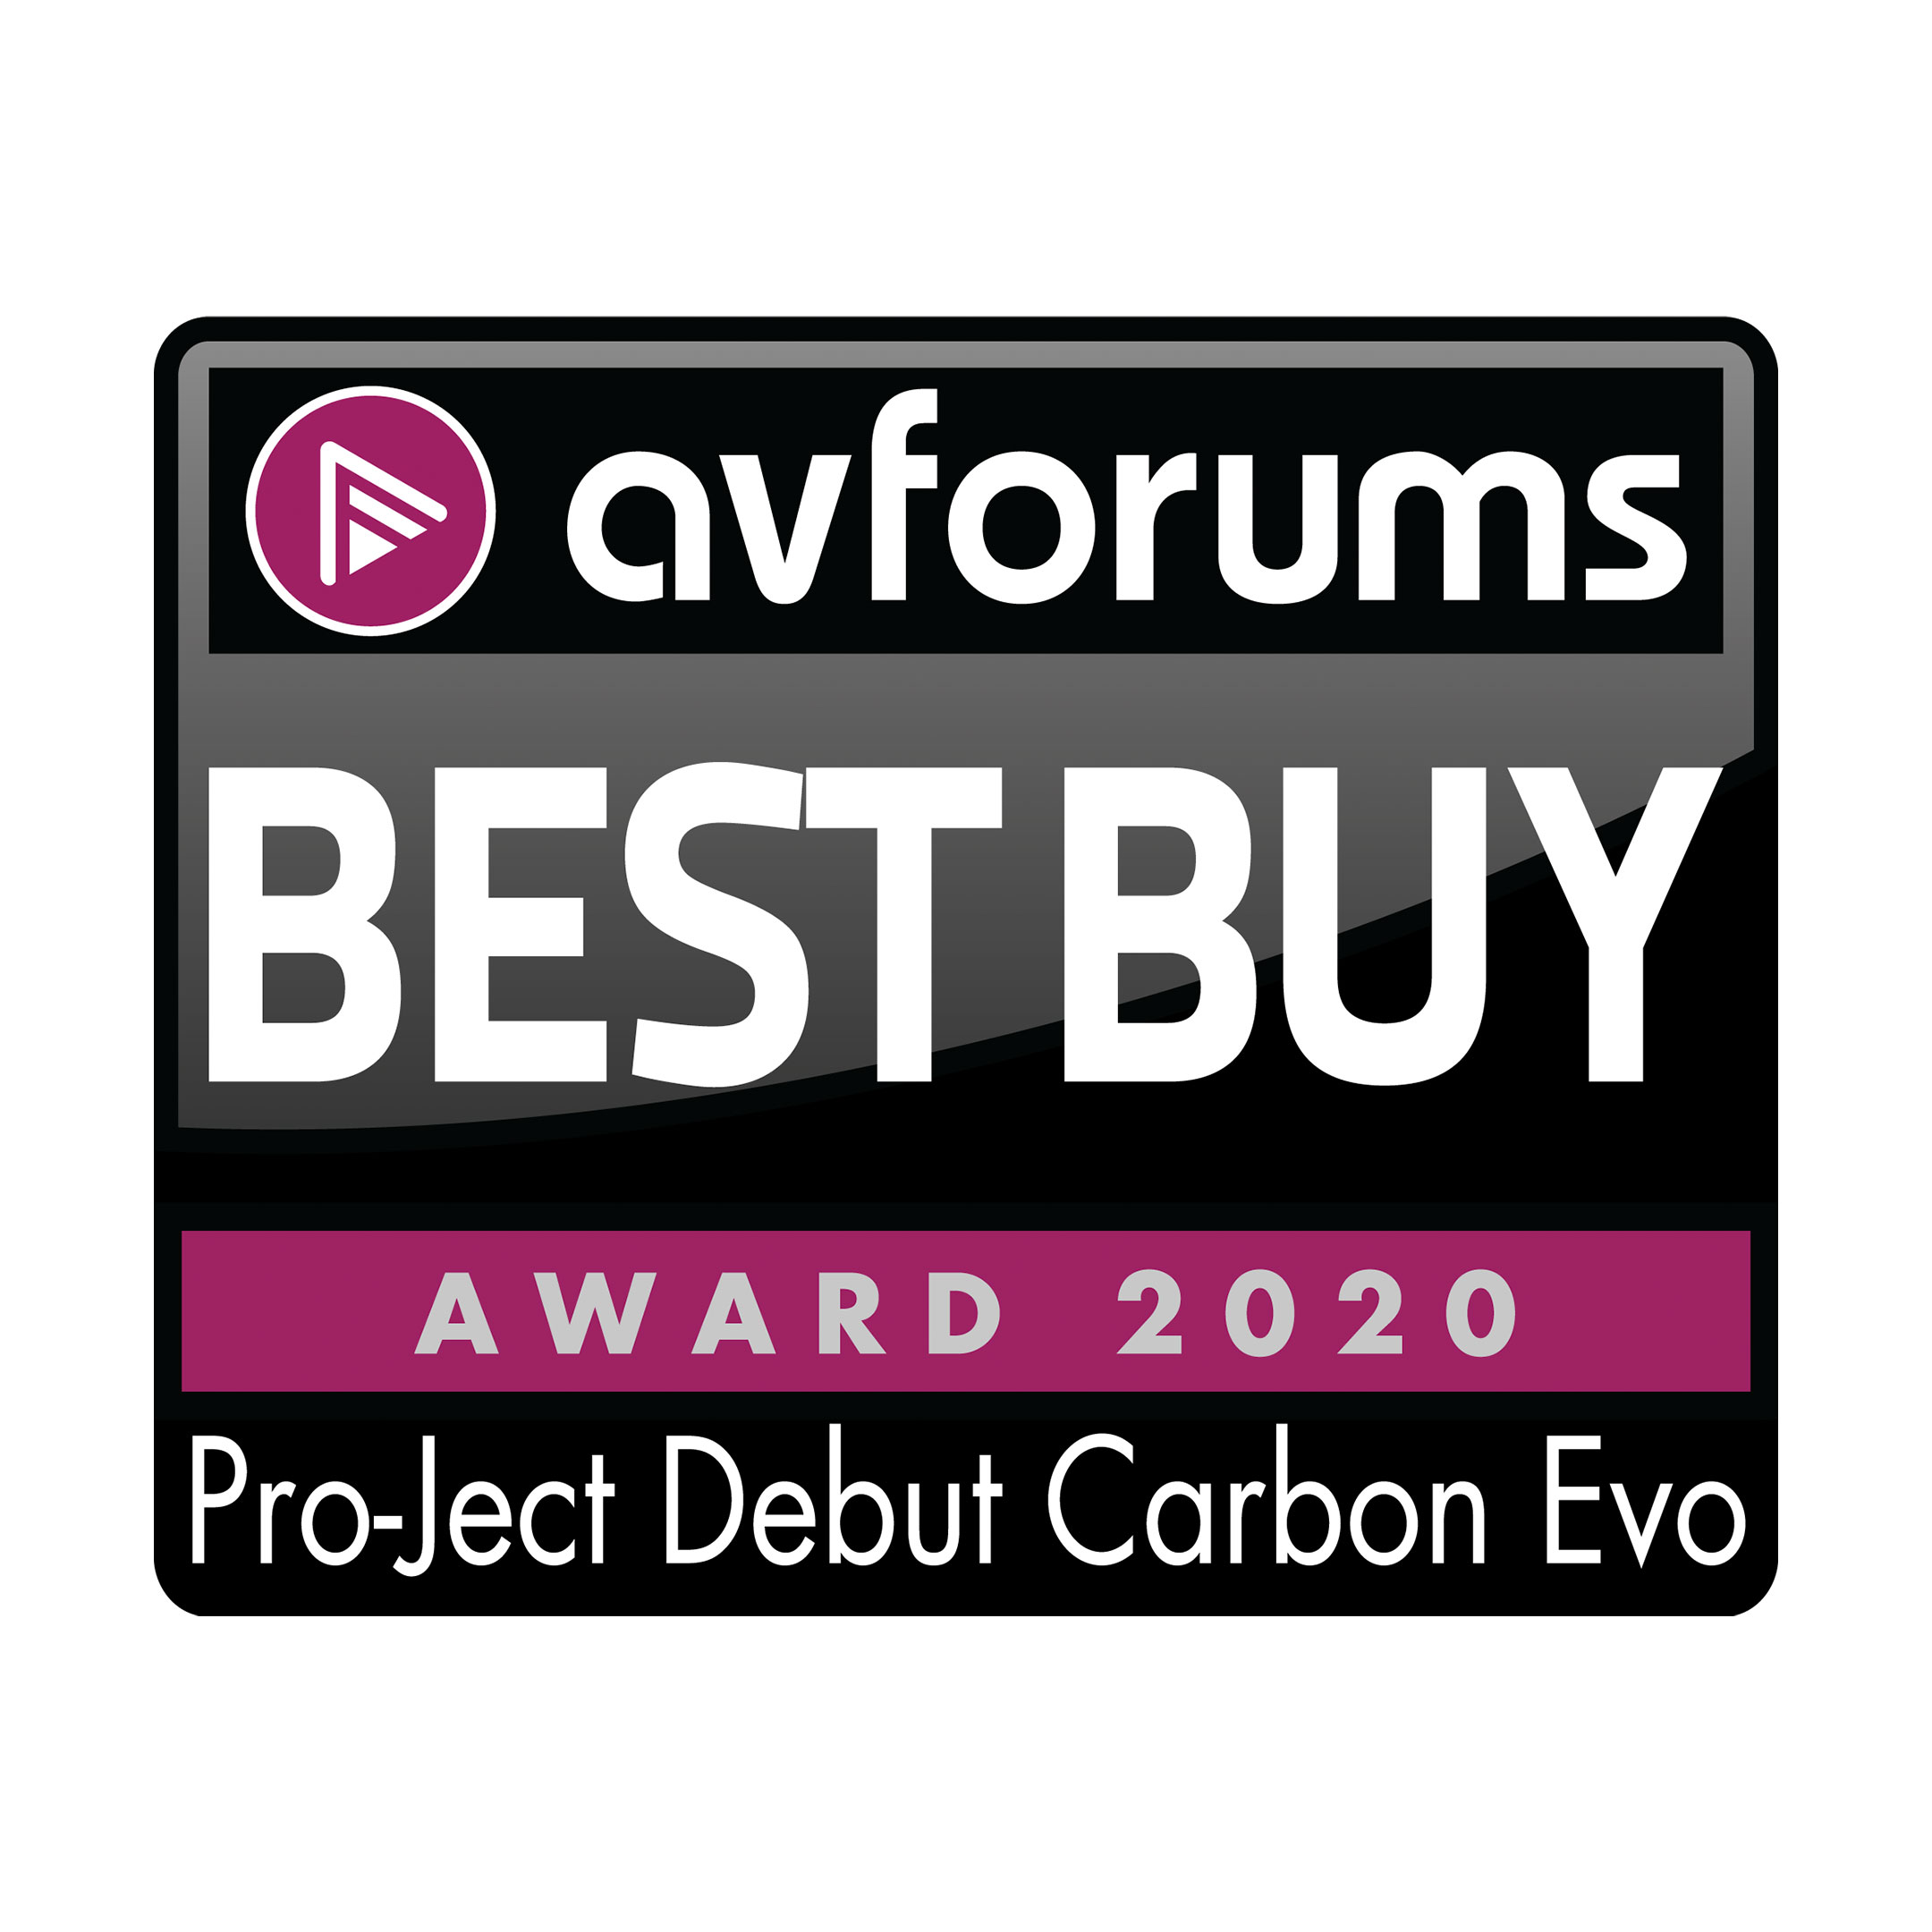 Pro-Ject Debut Carbon Evo, AvForums, Nov 2020